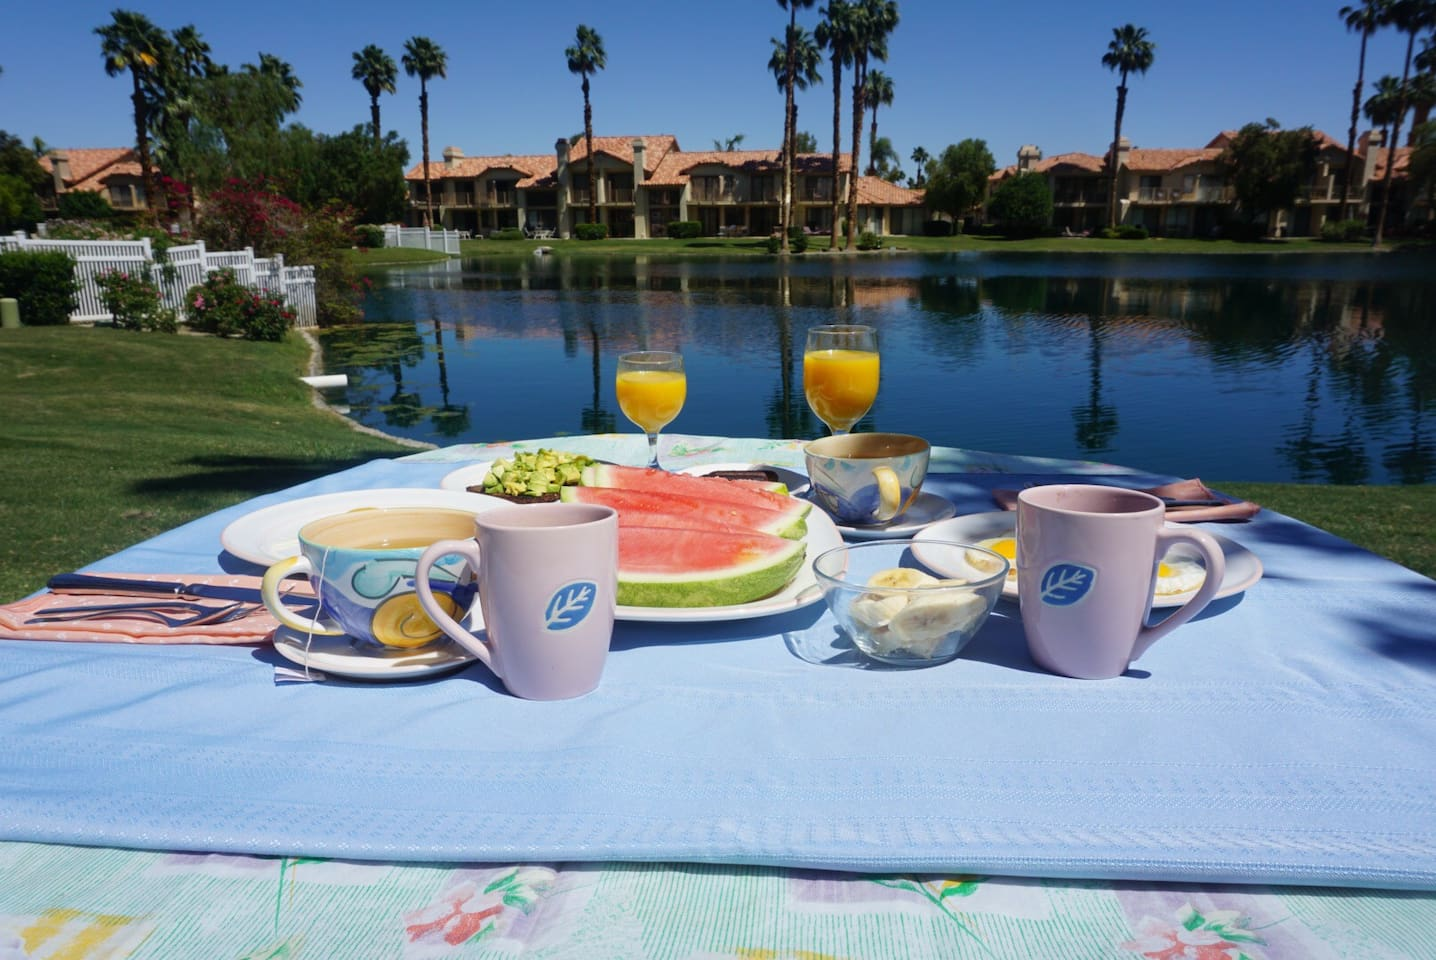 Breakfast on the condo patio with lake view, made by me &a photo taken by me